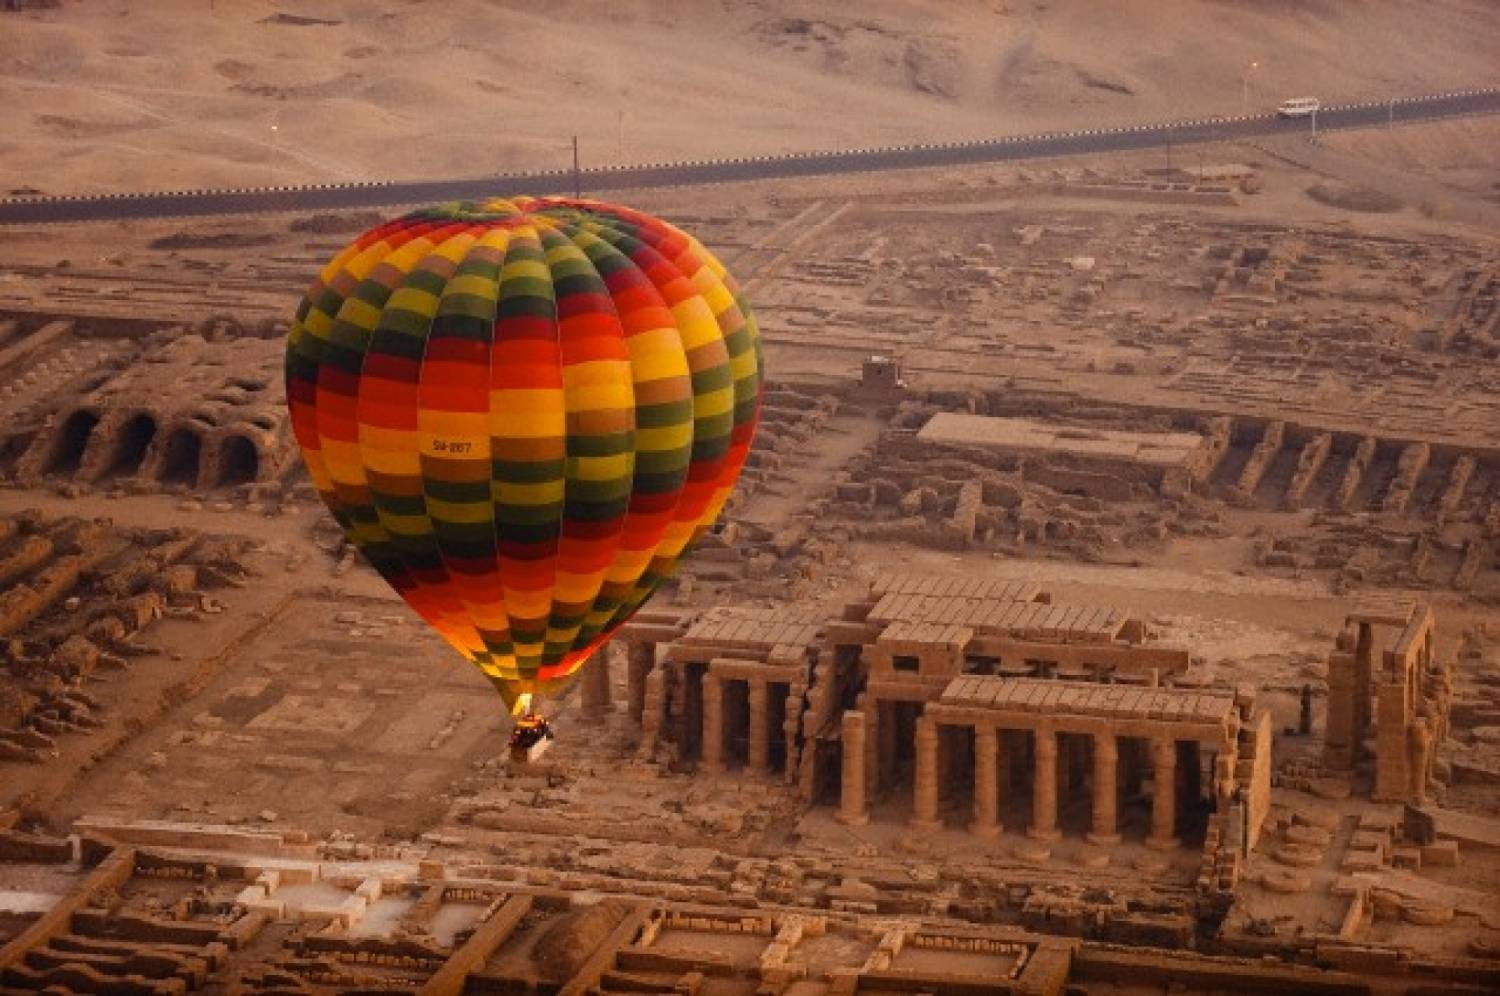 S. African tourist killed in Egypt balloon crash, 12 injured